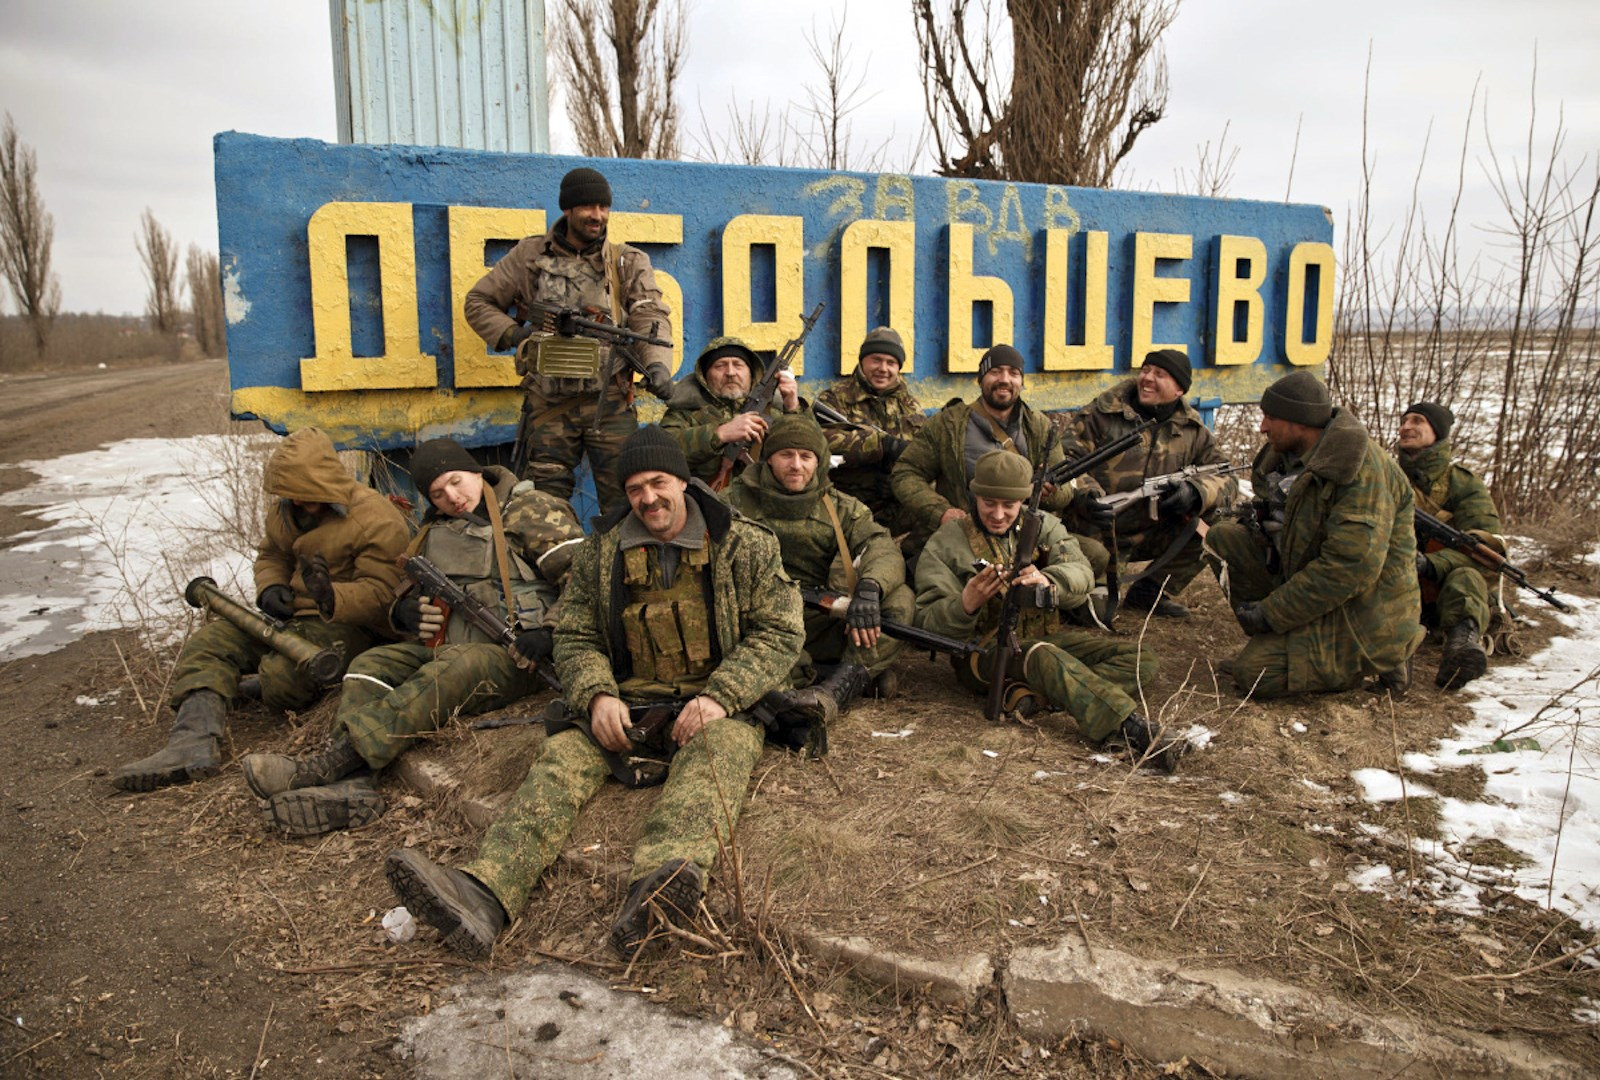 https://02varvara.files.wordpress.com/2015/02/00-debaltsevo-vsn-23-02-15.jpg?w=1600&h=1080